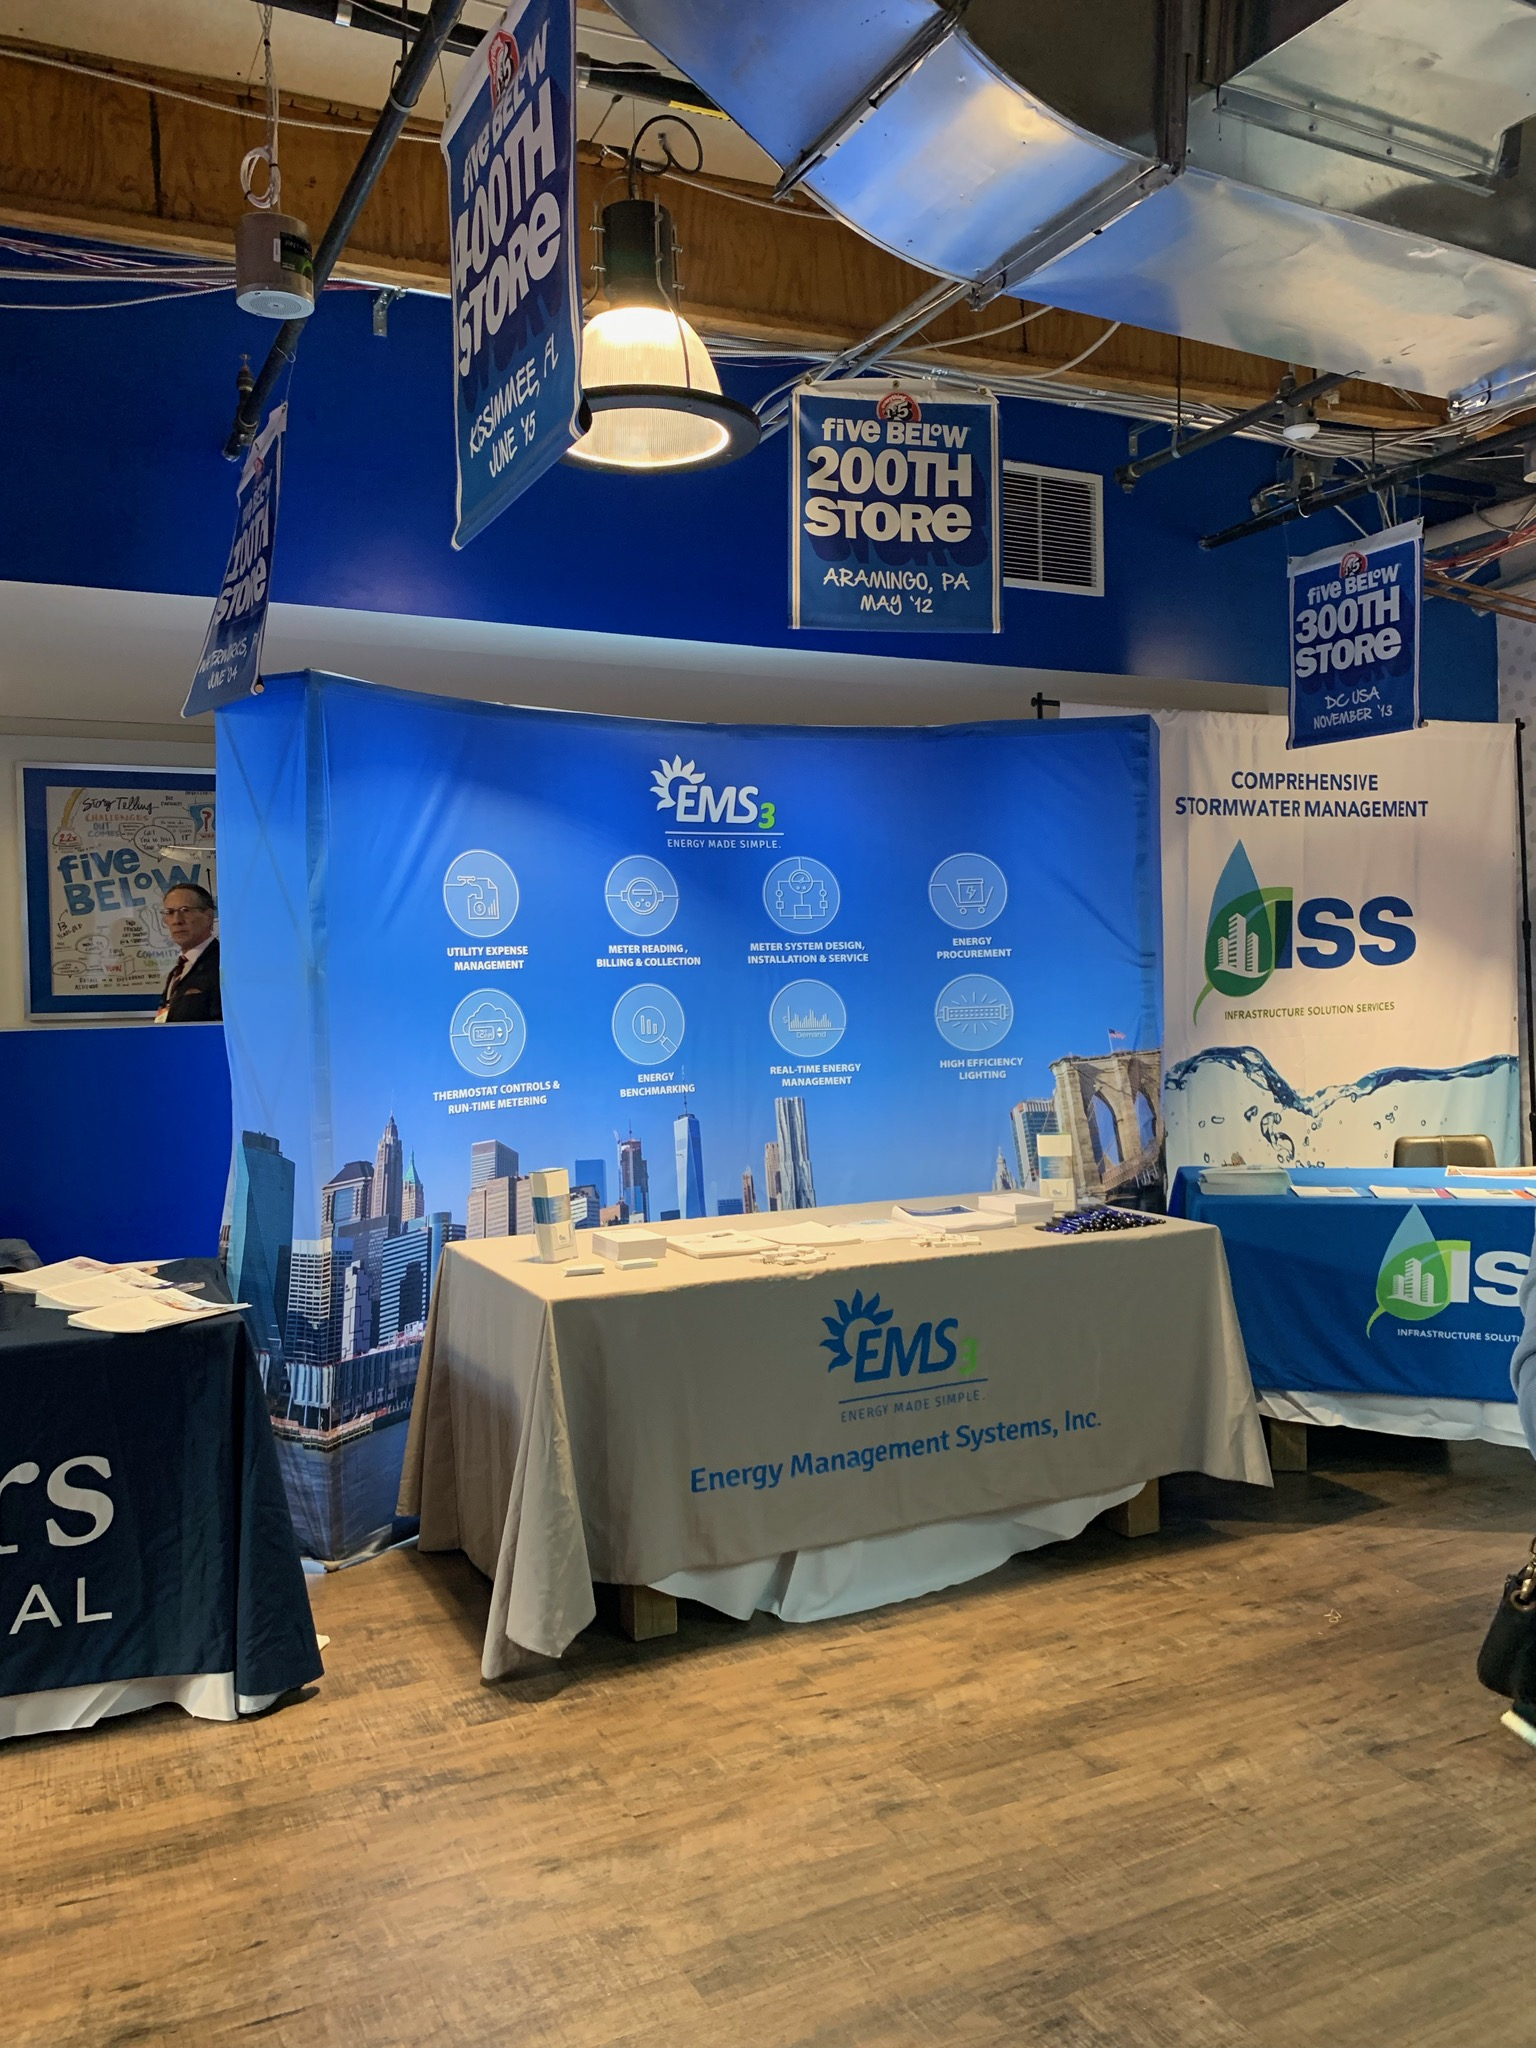 Visit our booth at the Bisnow Philadelphia State of the Market event today!